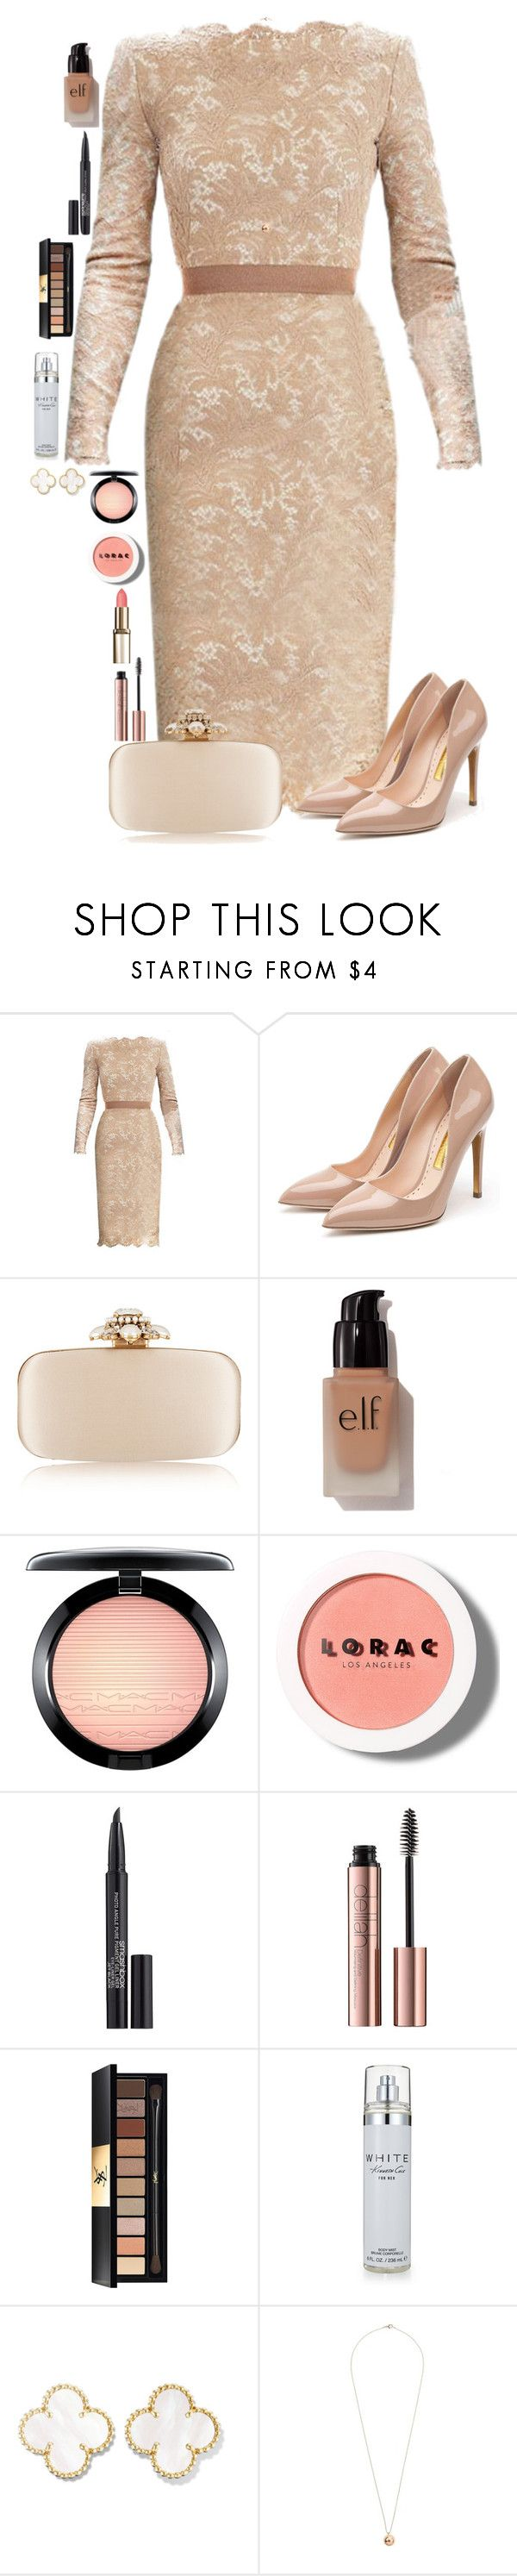 """Miradas"" by macapaz ❤ liked on Polyvore featuring Rupert Sanderson, Oscar de la Renta, e.l.f., MAC Cosmetics, LORAC, Smashbox, Yves Saint Laurent, Kenneth Cole and Dorothy Perkins"